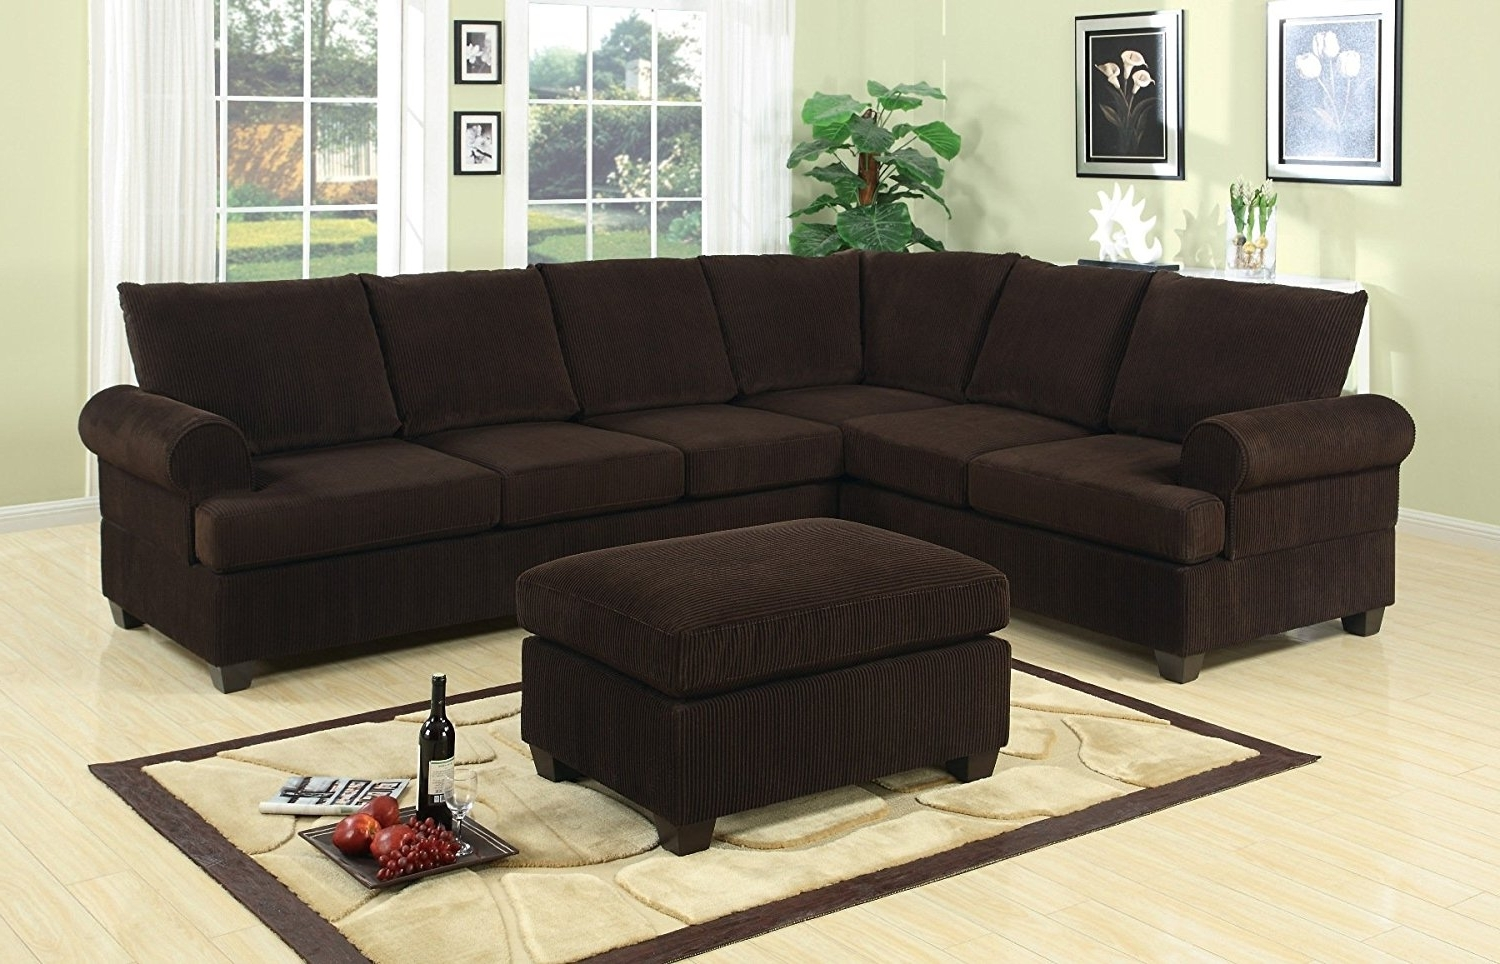 Well Known Sectional Sofas Jacksonville Fl – Home And Textiles With Regard To Jacksonville Fl Sectional Sofas (View 8 of 15)